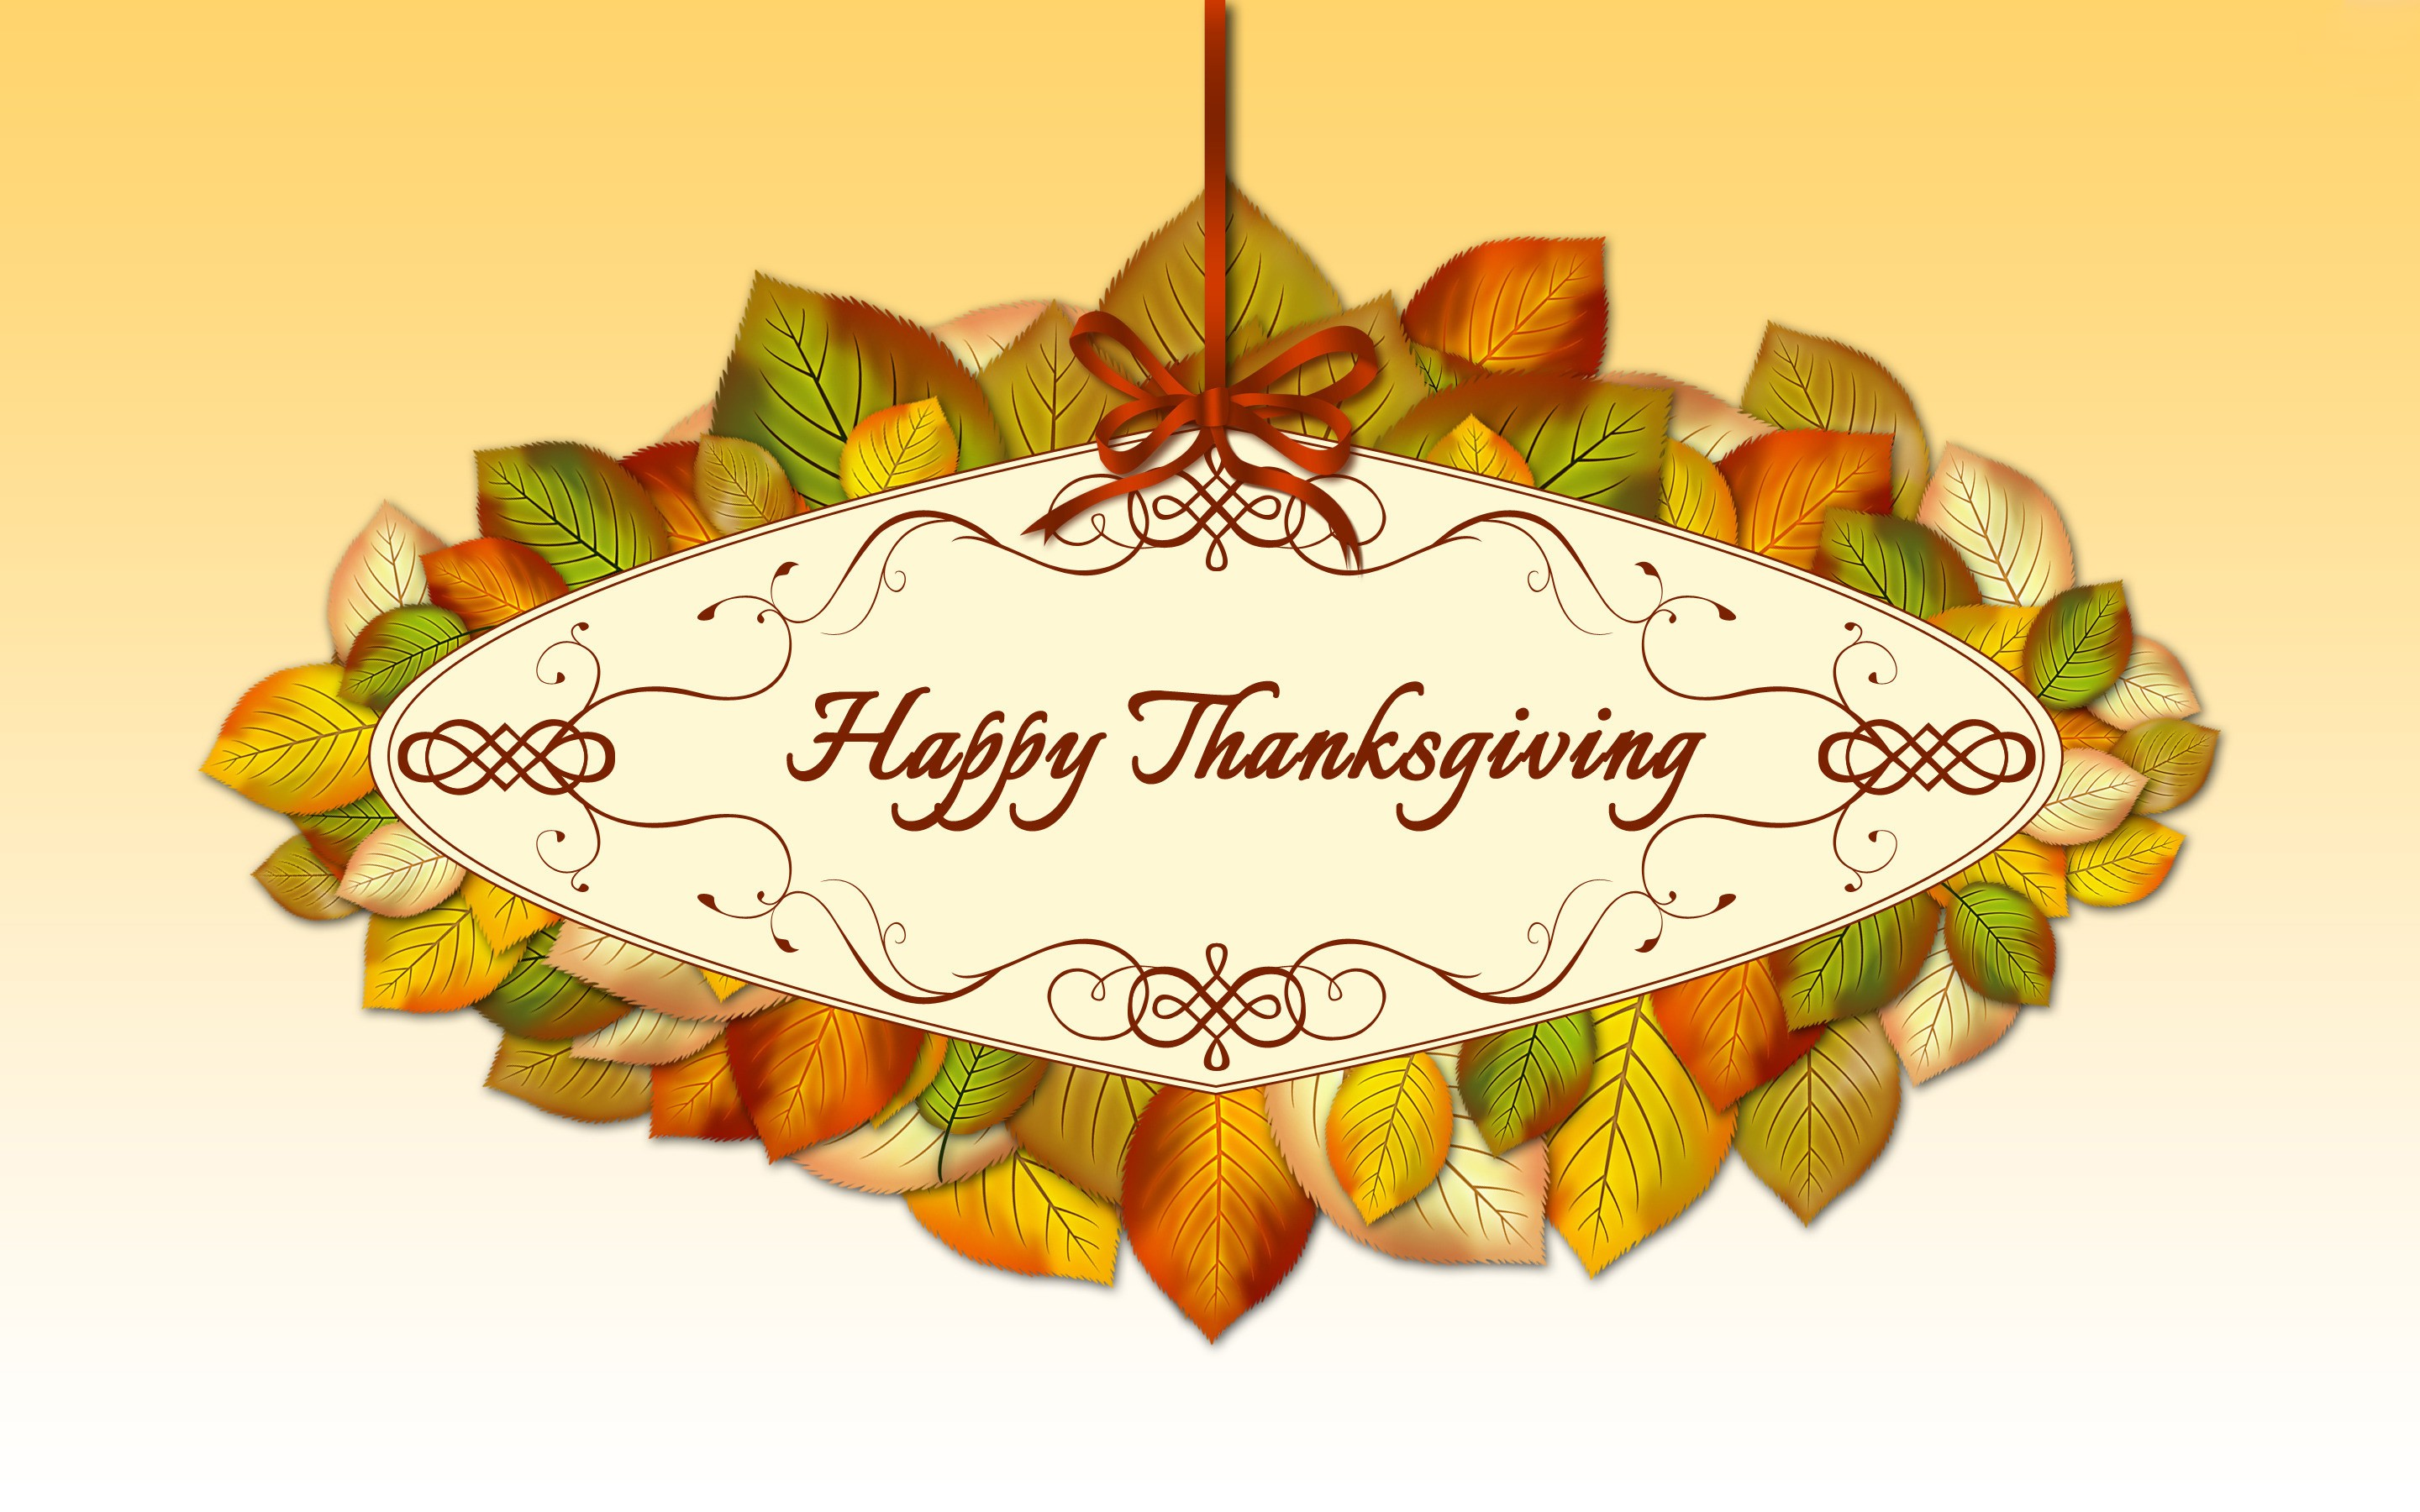 Happy thanksgiving greeting cards for friends family everyone thanksgiving day greeting cards kristyandbryce Choice Image